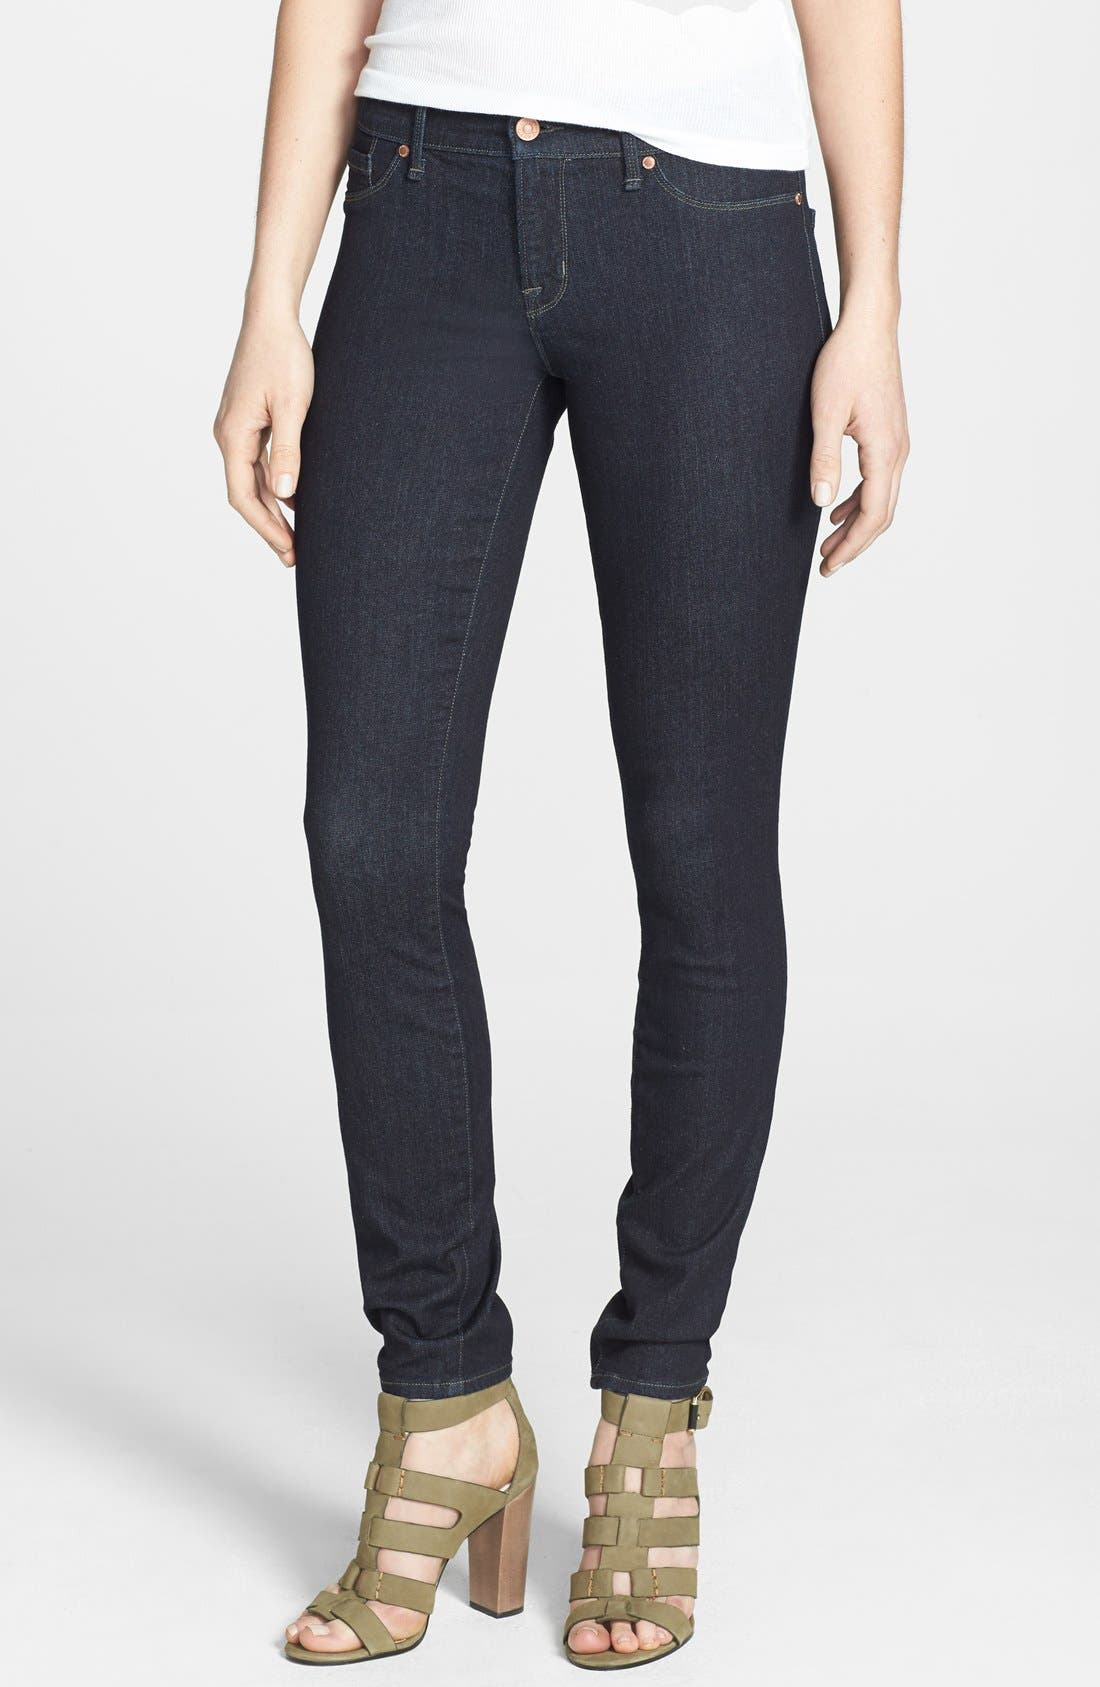 Alternate Image 1 Selected - MARC BY MARC JACOBS 'Stick' Stretch Skinny Jeans (Rinse)